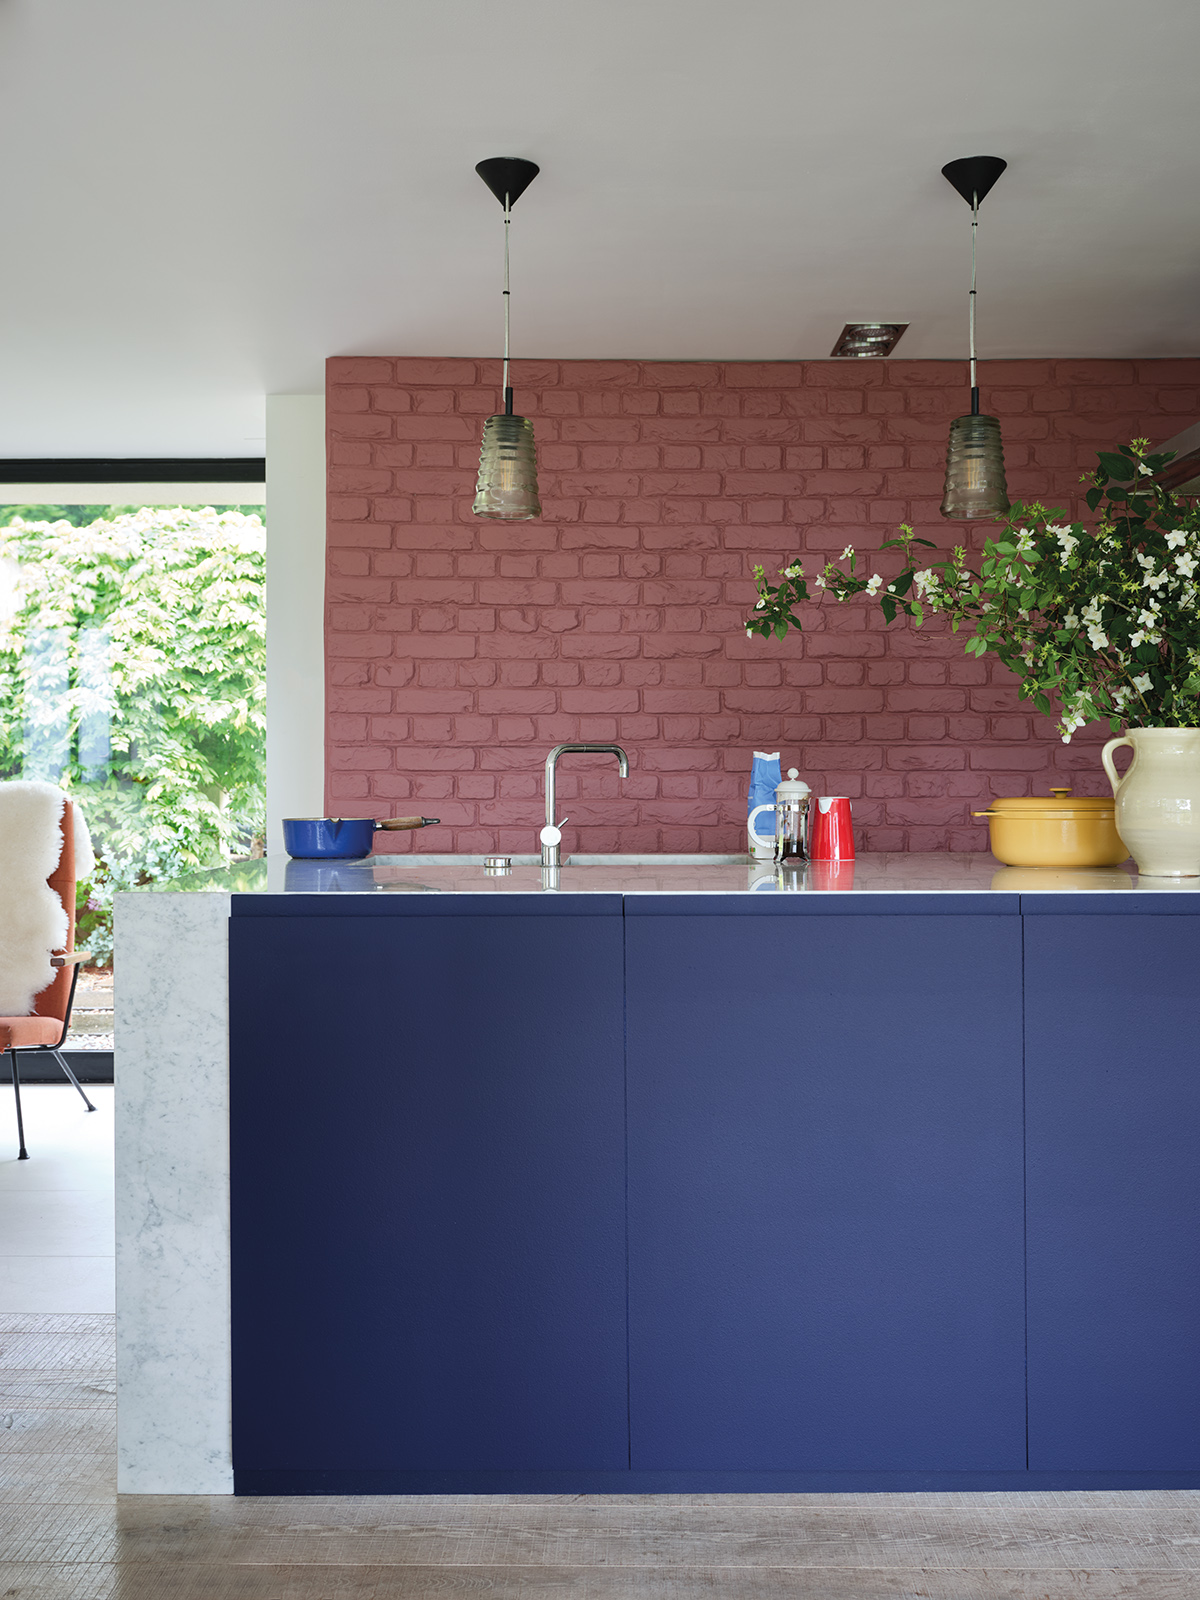 The strong pigment shows in this intense shade of blue on kitchen cabinets, it creates a welcoming feel against the bare red brick wall. Just one of the new paint collection by Farrow & Ball and The Natural History Museum. Interior designer Sophie Robinson takes a look through the whole collection here. #farrowandball #bluekitchen #barebrick #sophierobinson